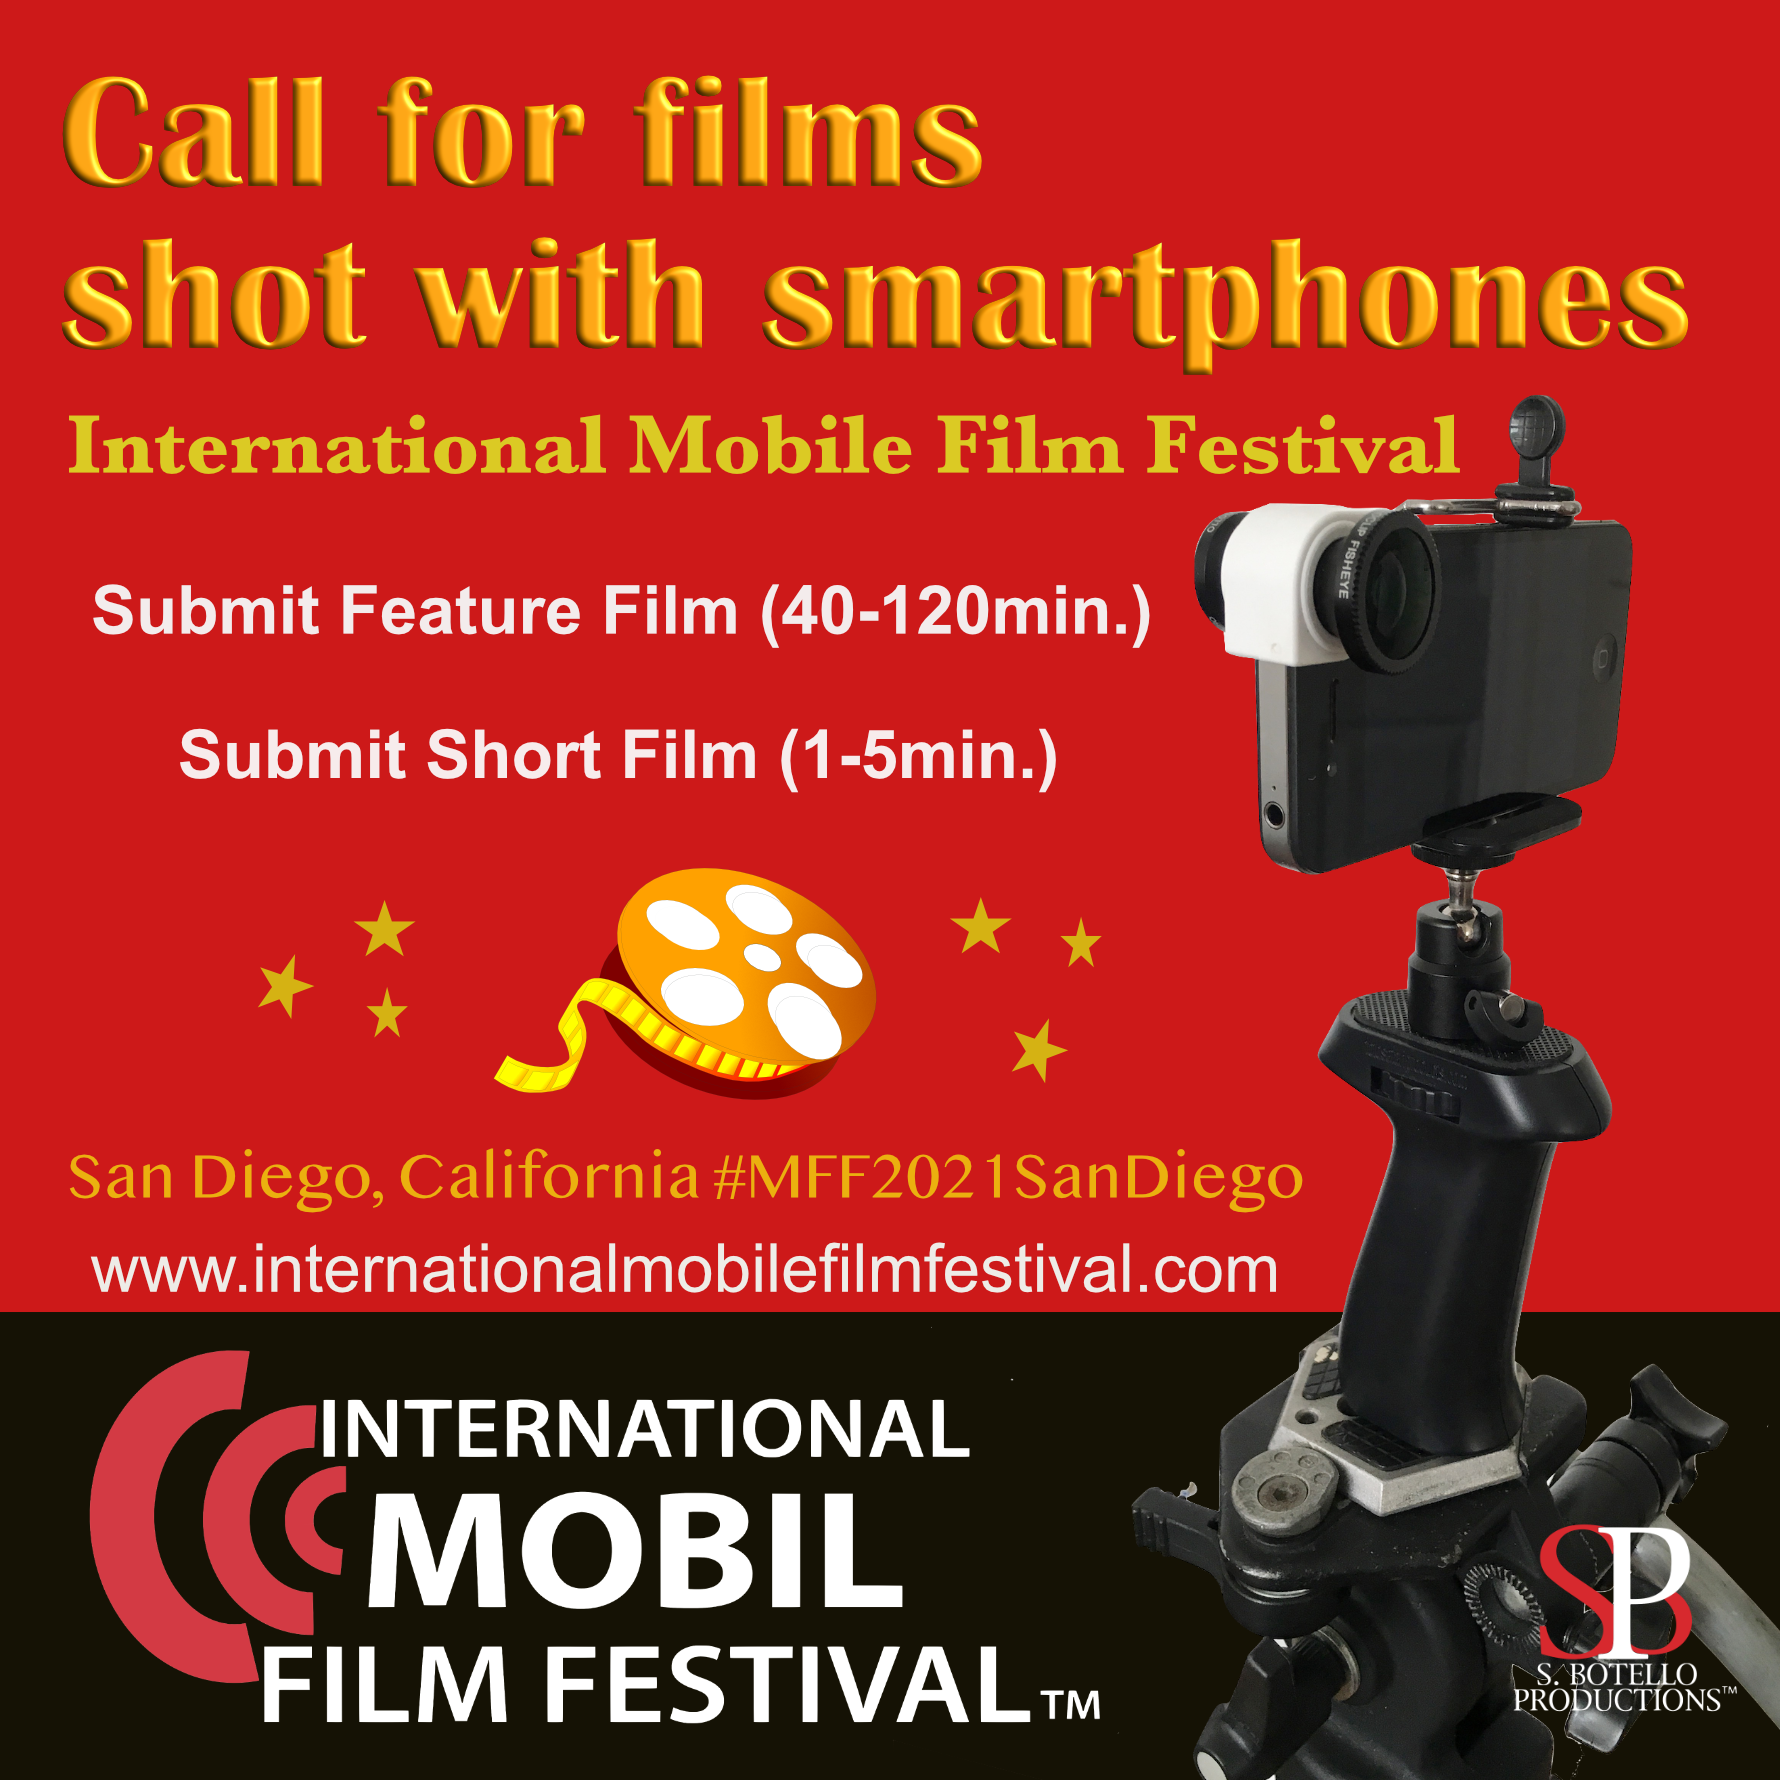 Submit films to IMFF 2021